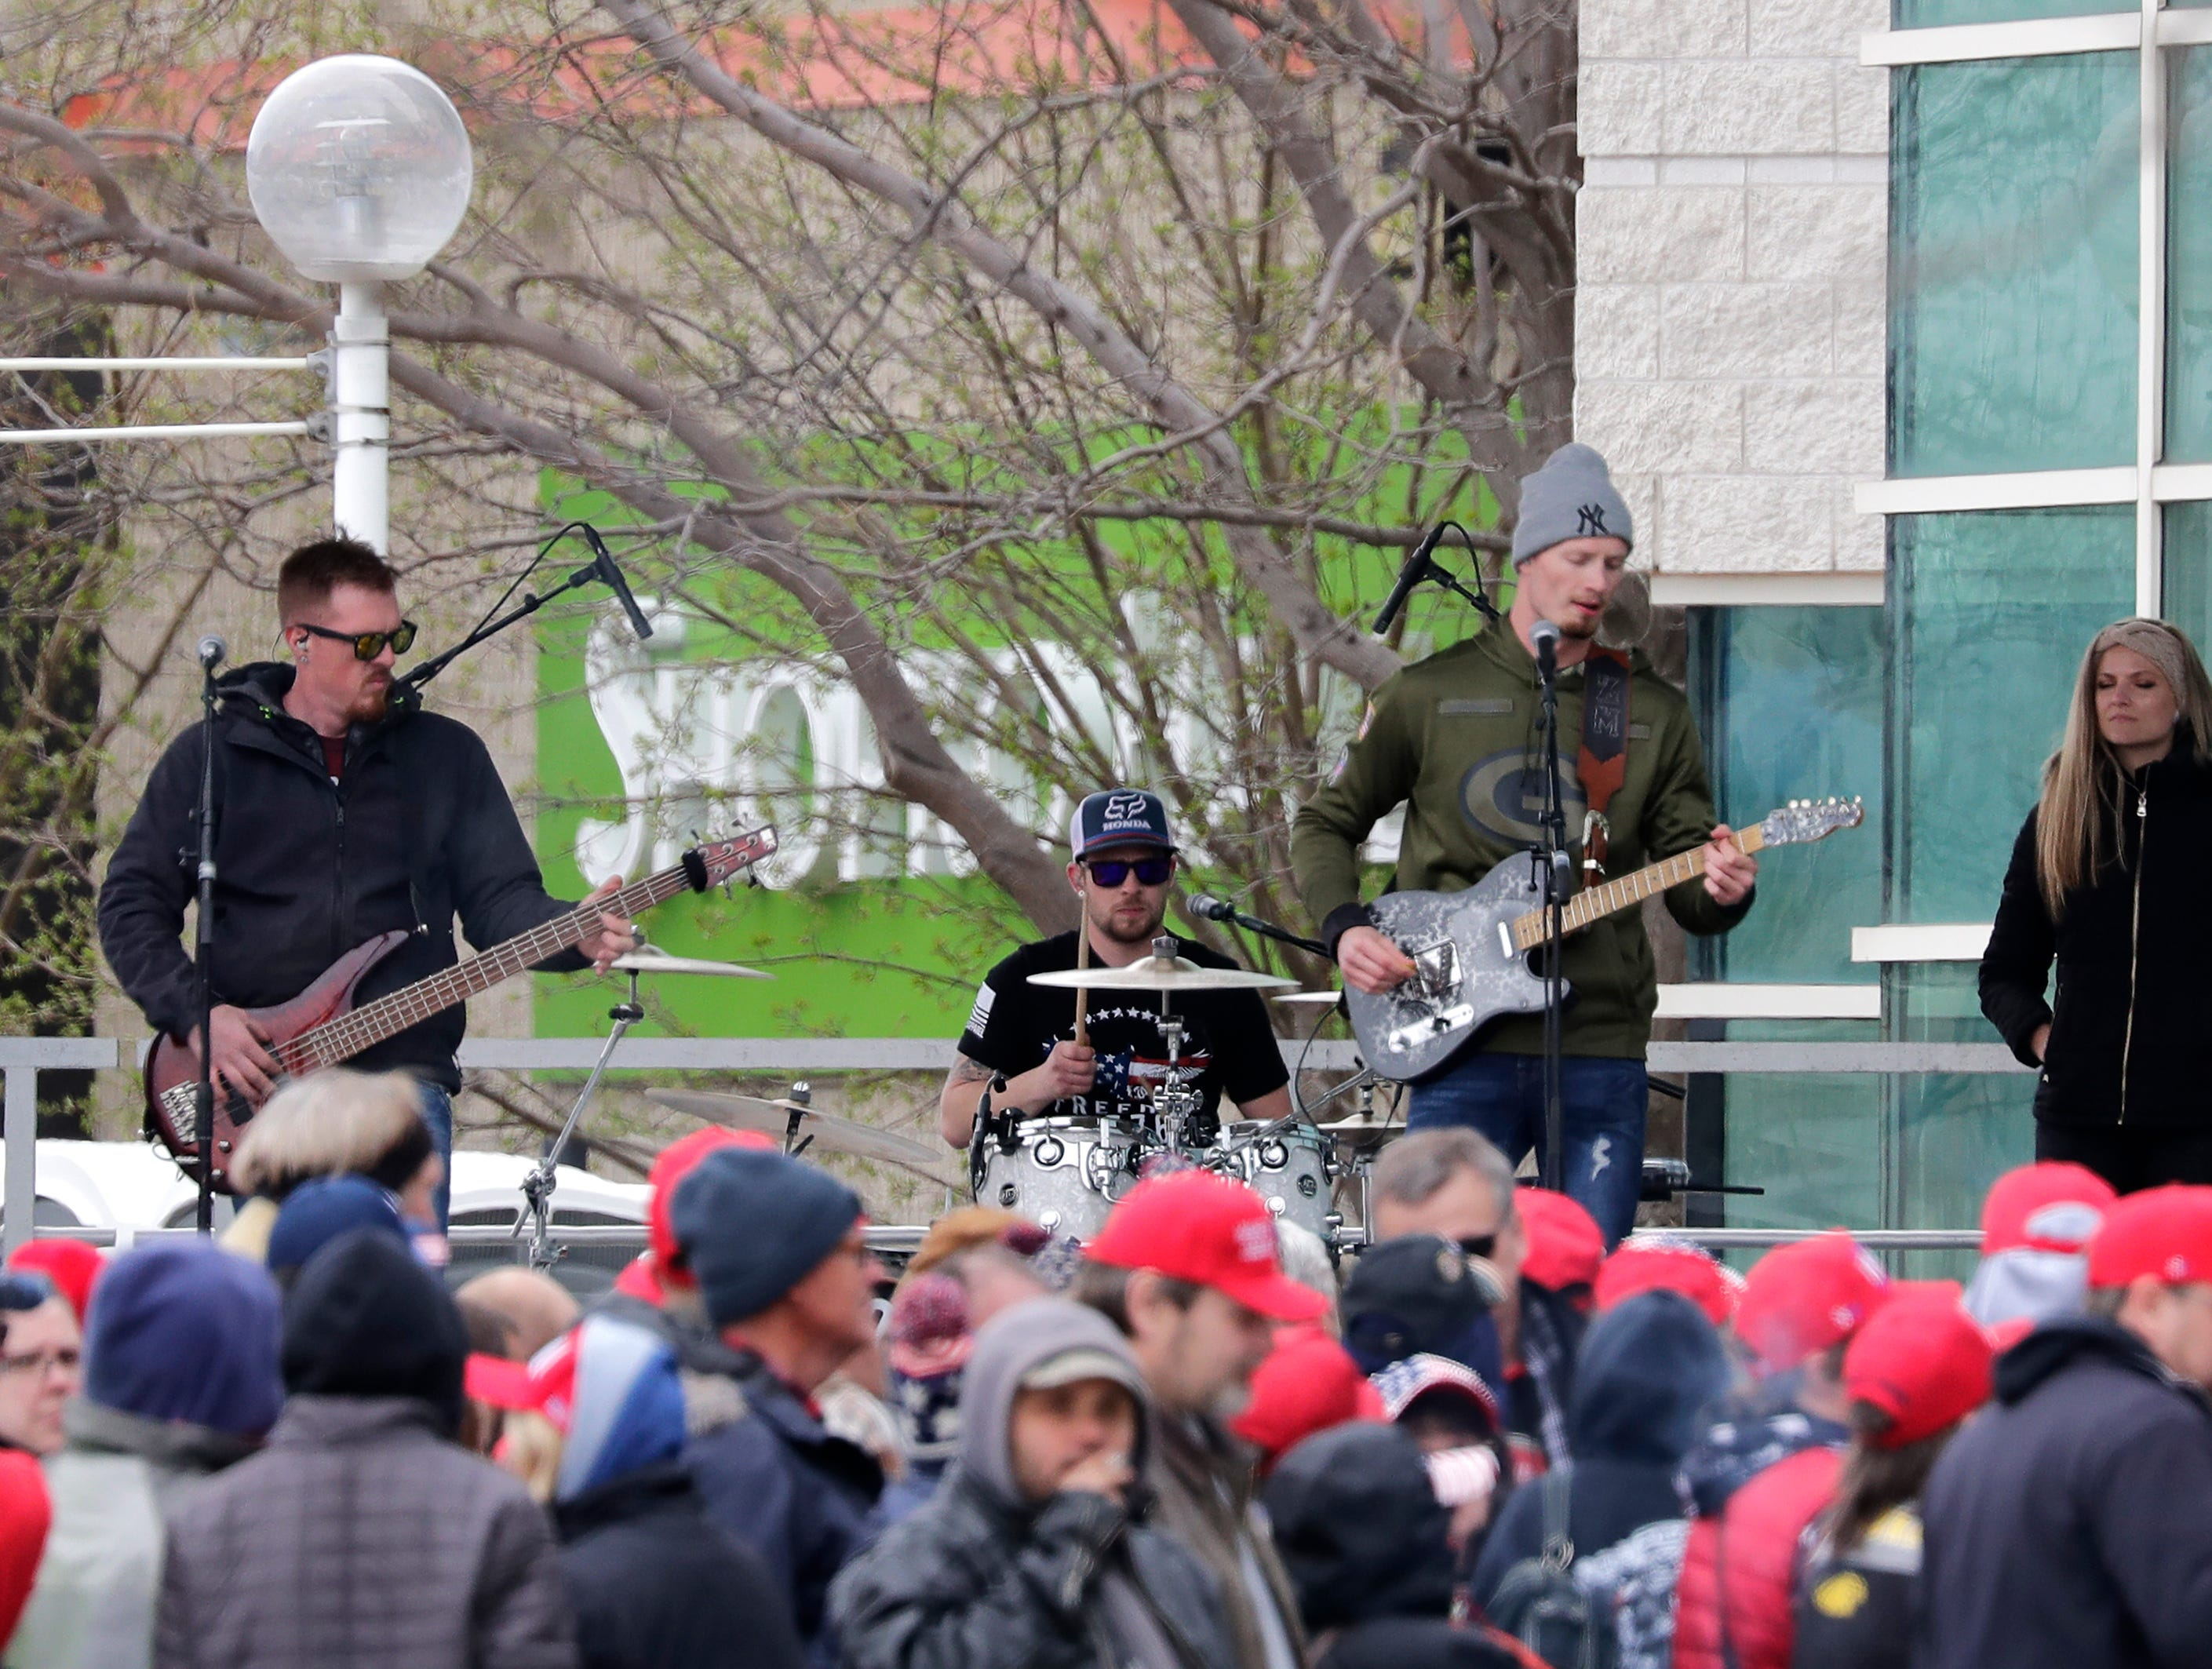 A band entertains supporters waiting in line, some all night, before President Donald J. TrumpÕs Make America Great Again Rally on Saturday, April 27, 2019, at the Resch Center in Green Bay, Wis.